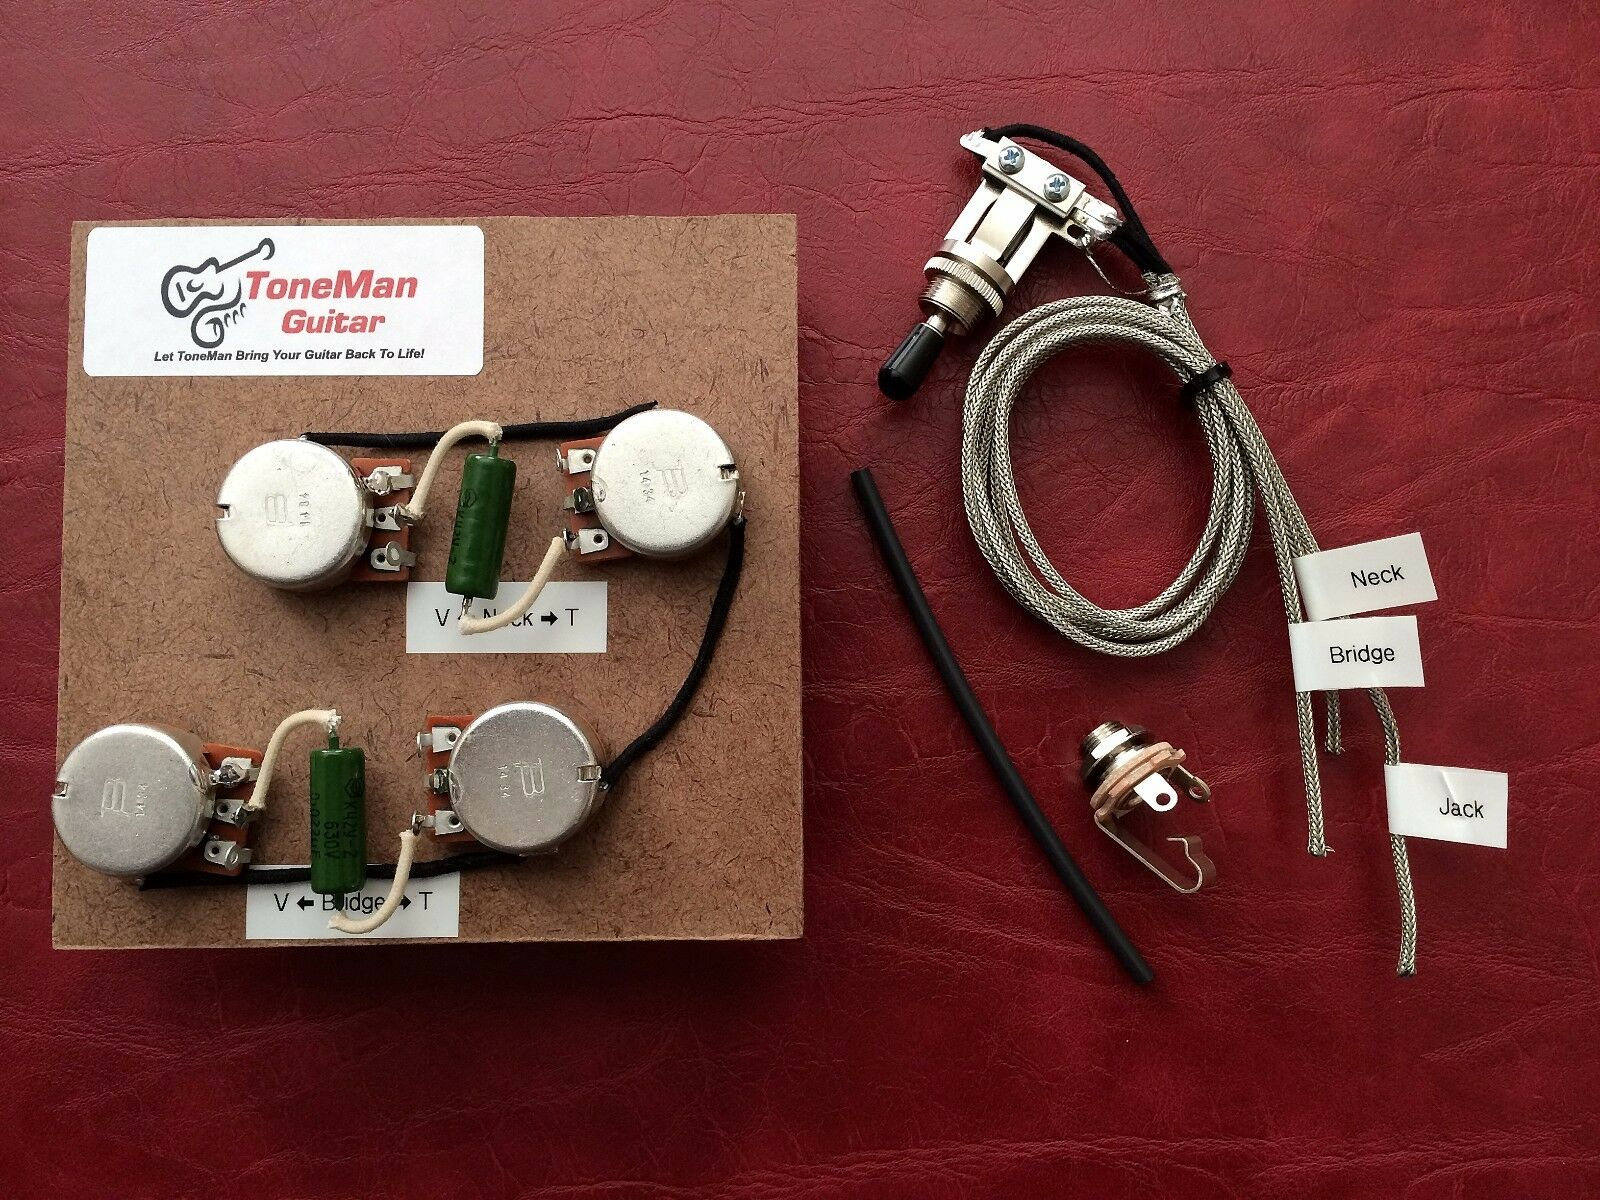 The Blaus prewirot Harness Kit For Gibson Les Paul Long Shaft Pots Switch